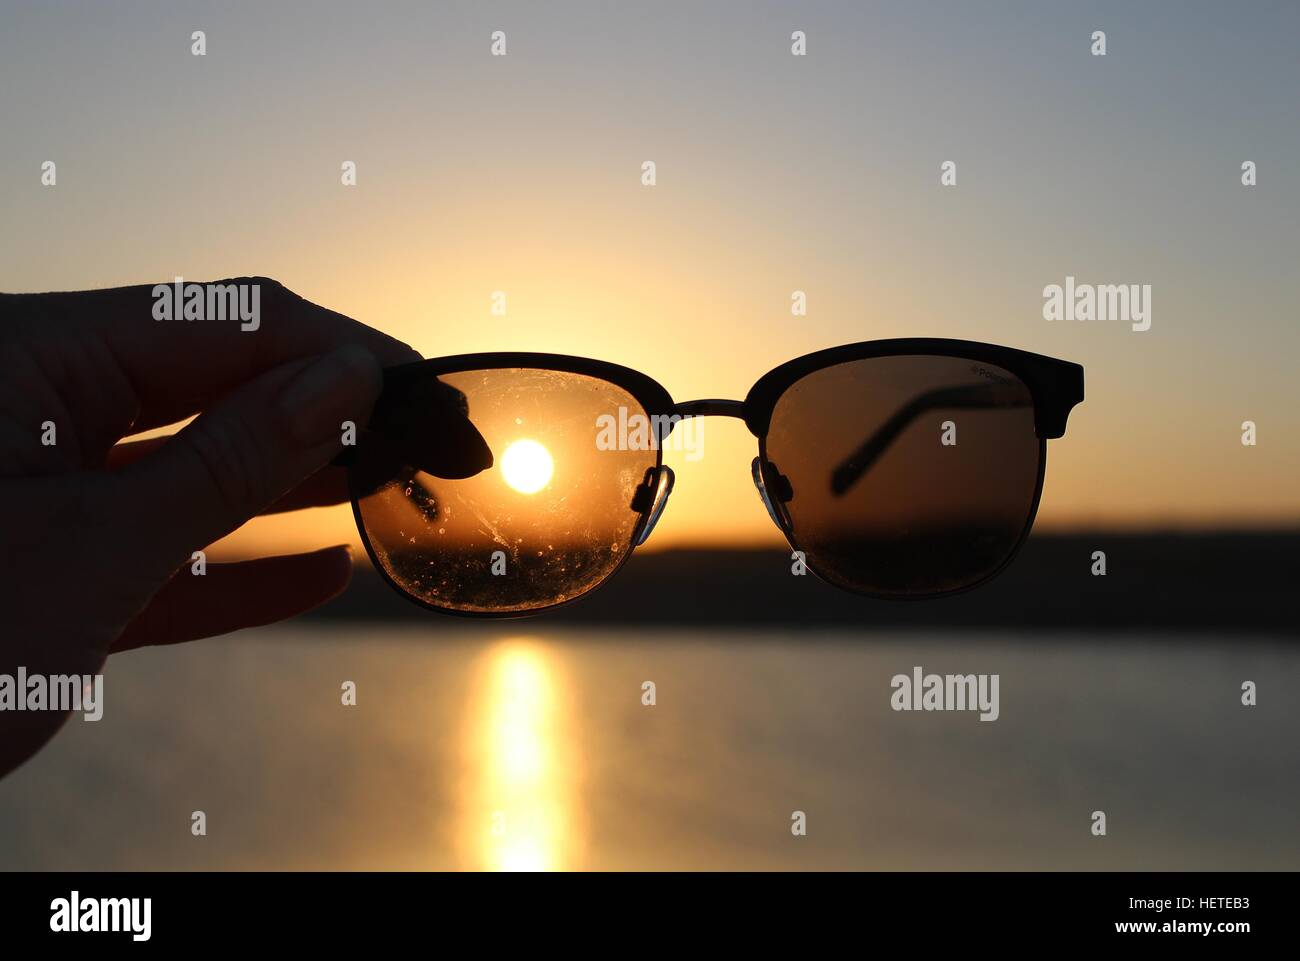 the sunsetting and the sun shinning through an sunglass lense also the sun reflecting on the water - Stock Image